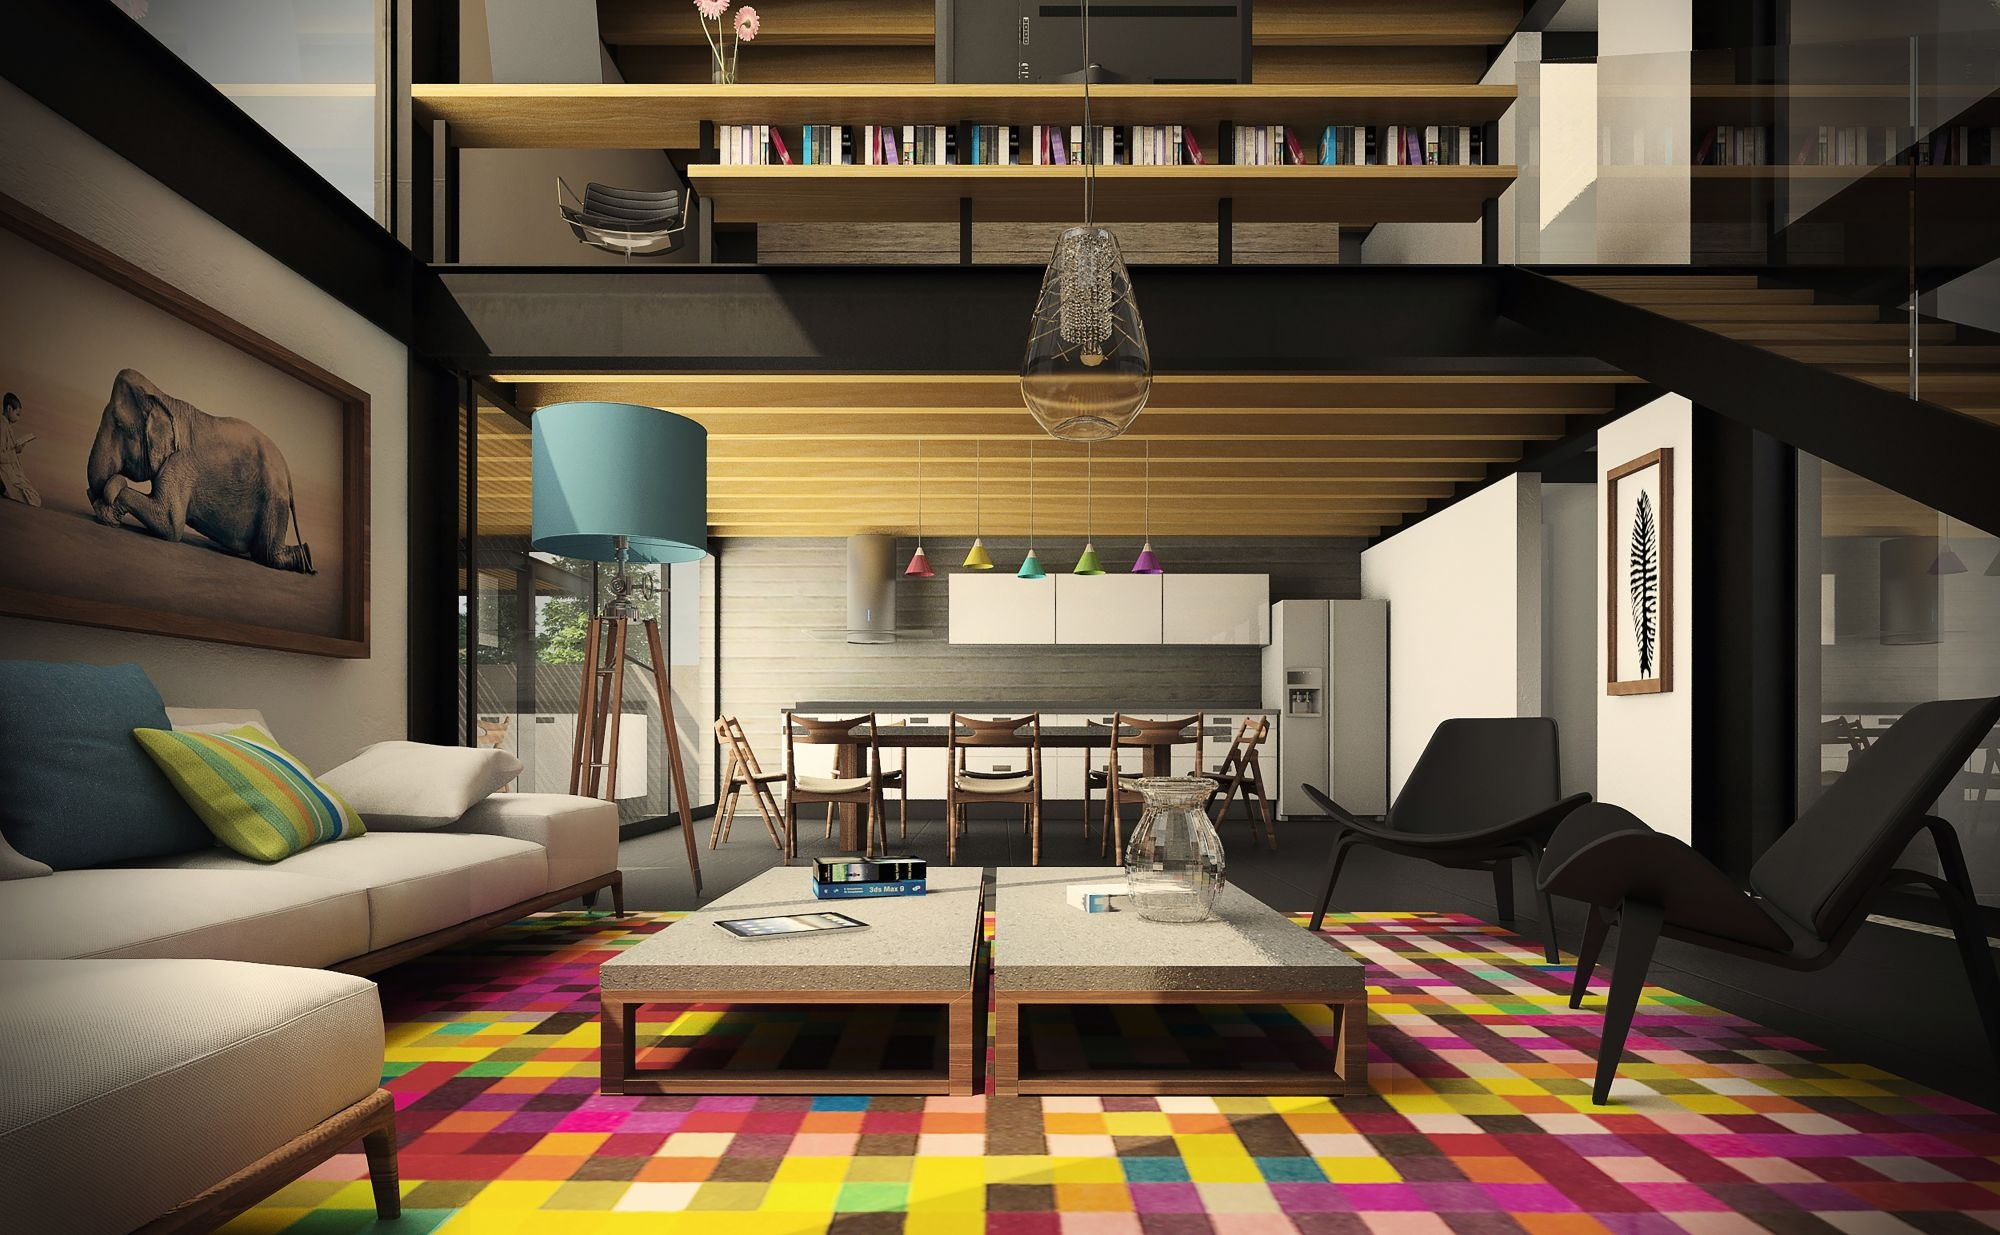 wesomely Stylish Urban Living ooms - ^